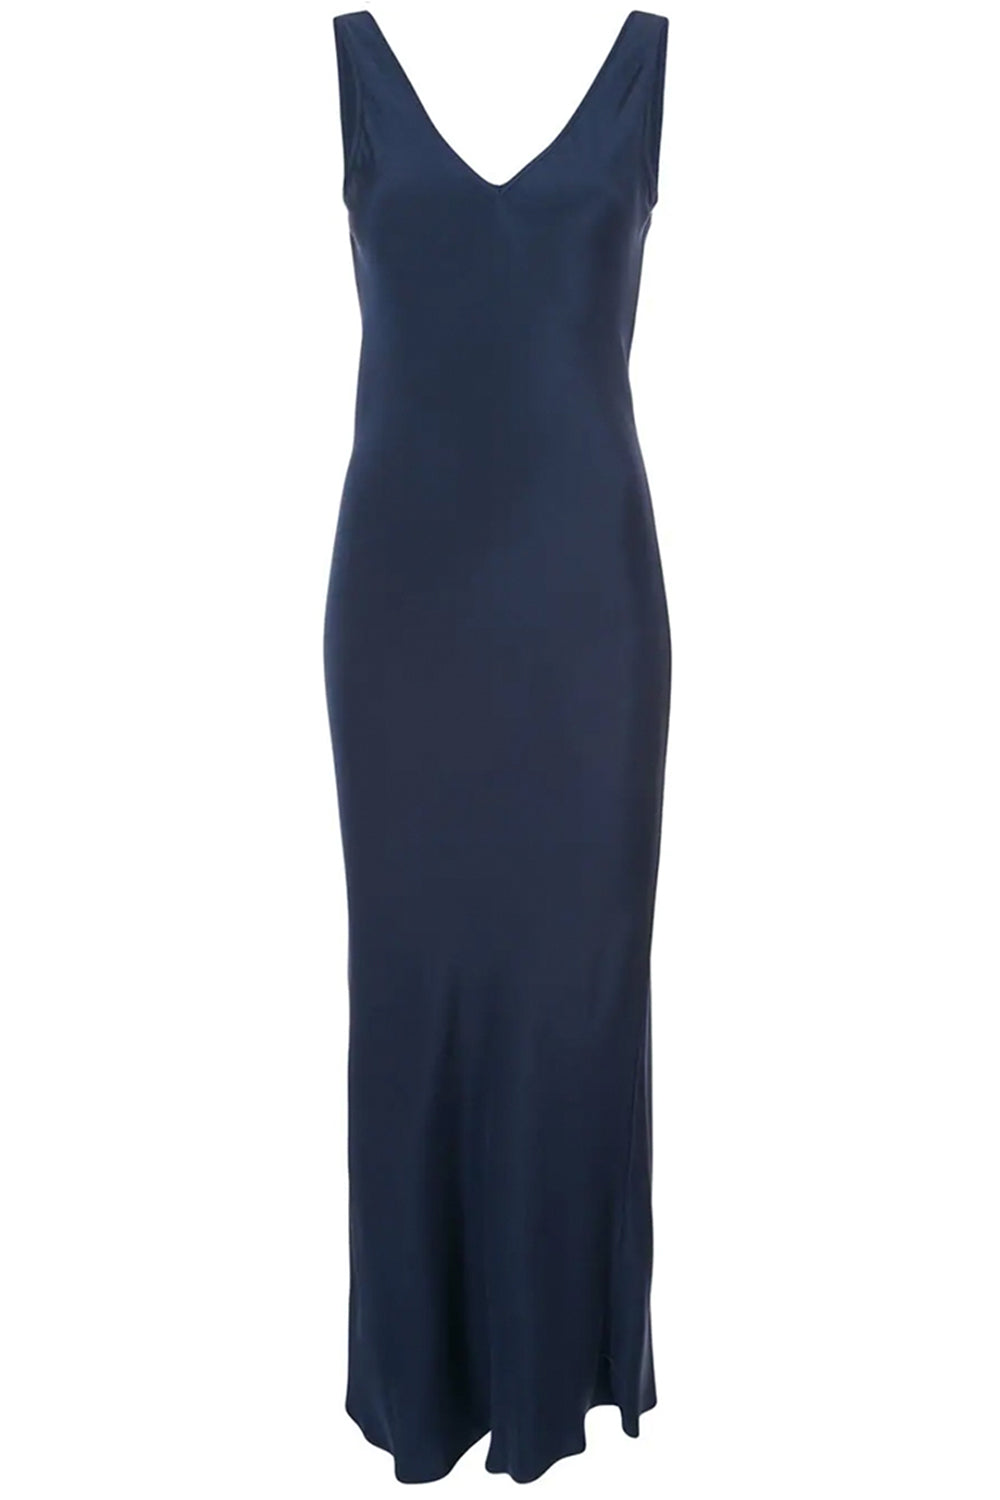 Double V Neck Dress in Navy